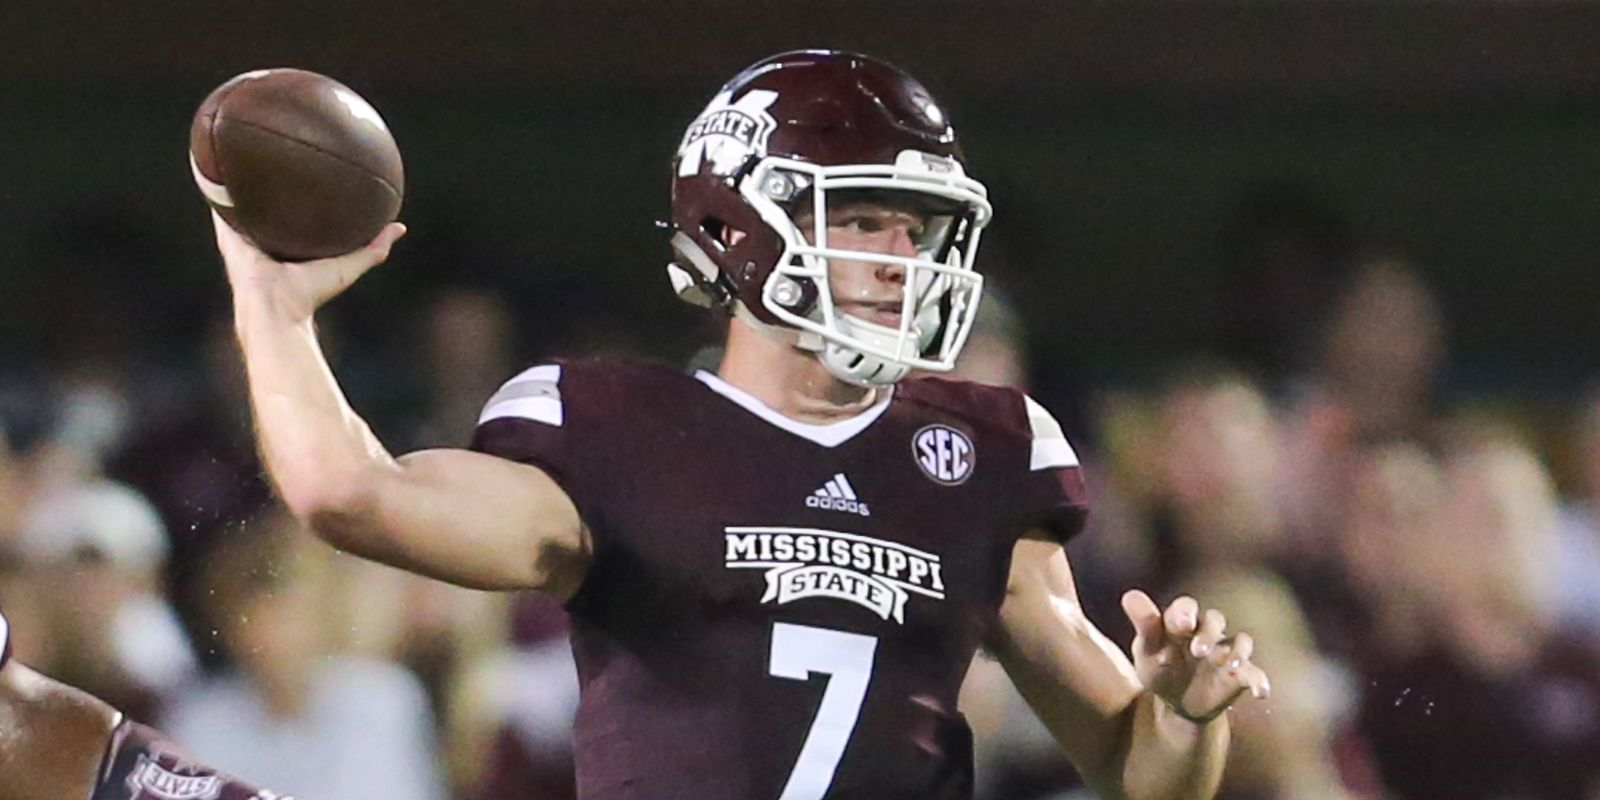 Mississippi State's Nick Fitzgerald grew up a Georgia fan but that won't matter Saturday